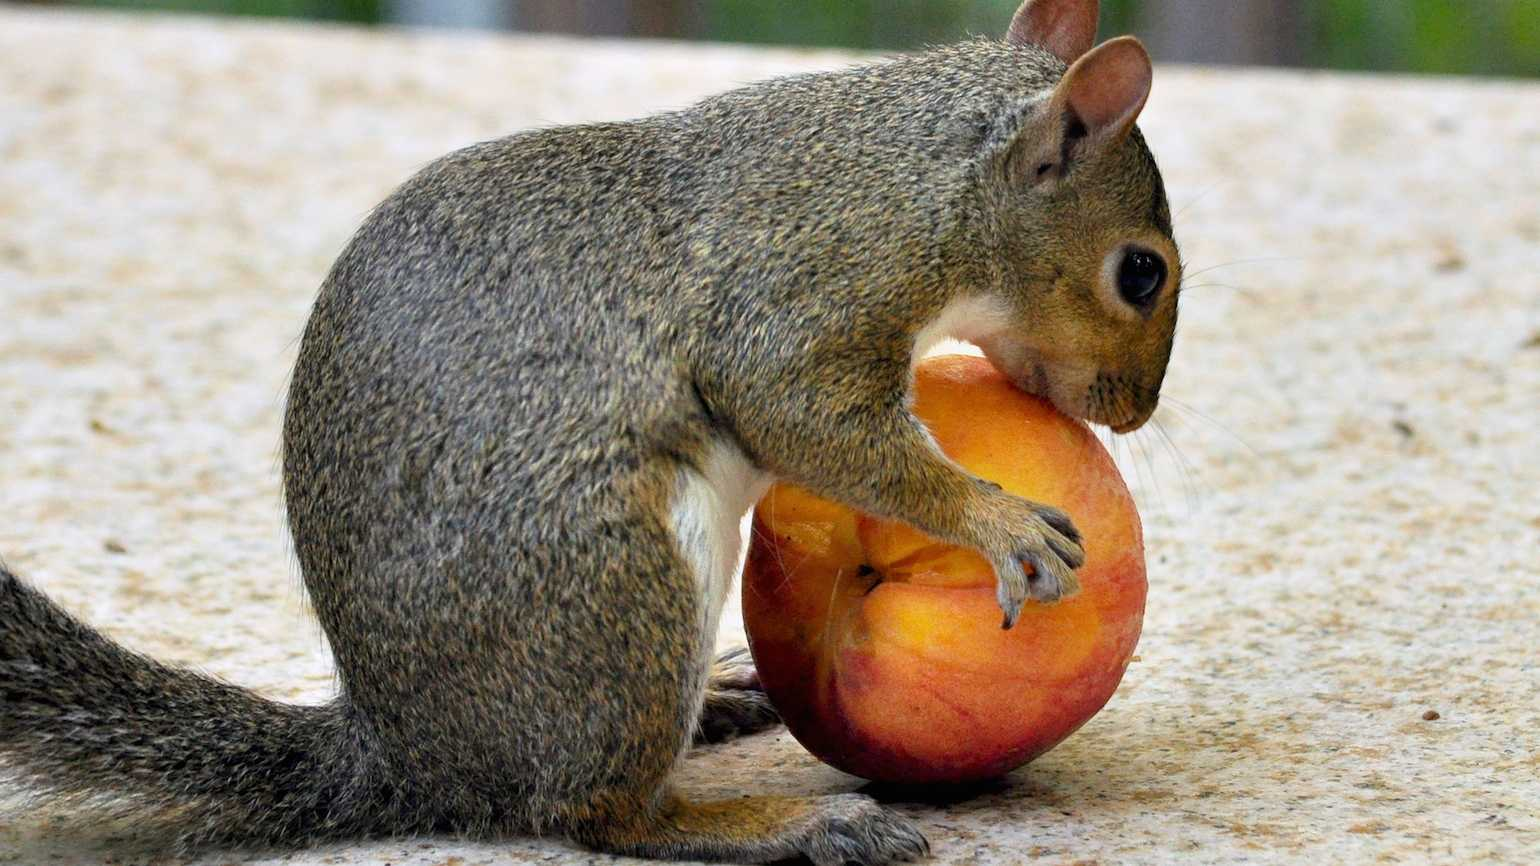 Sharing a peach with a squirrel